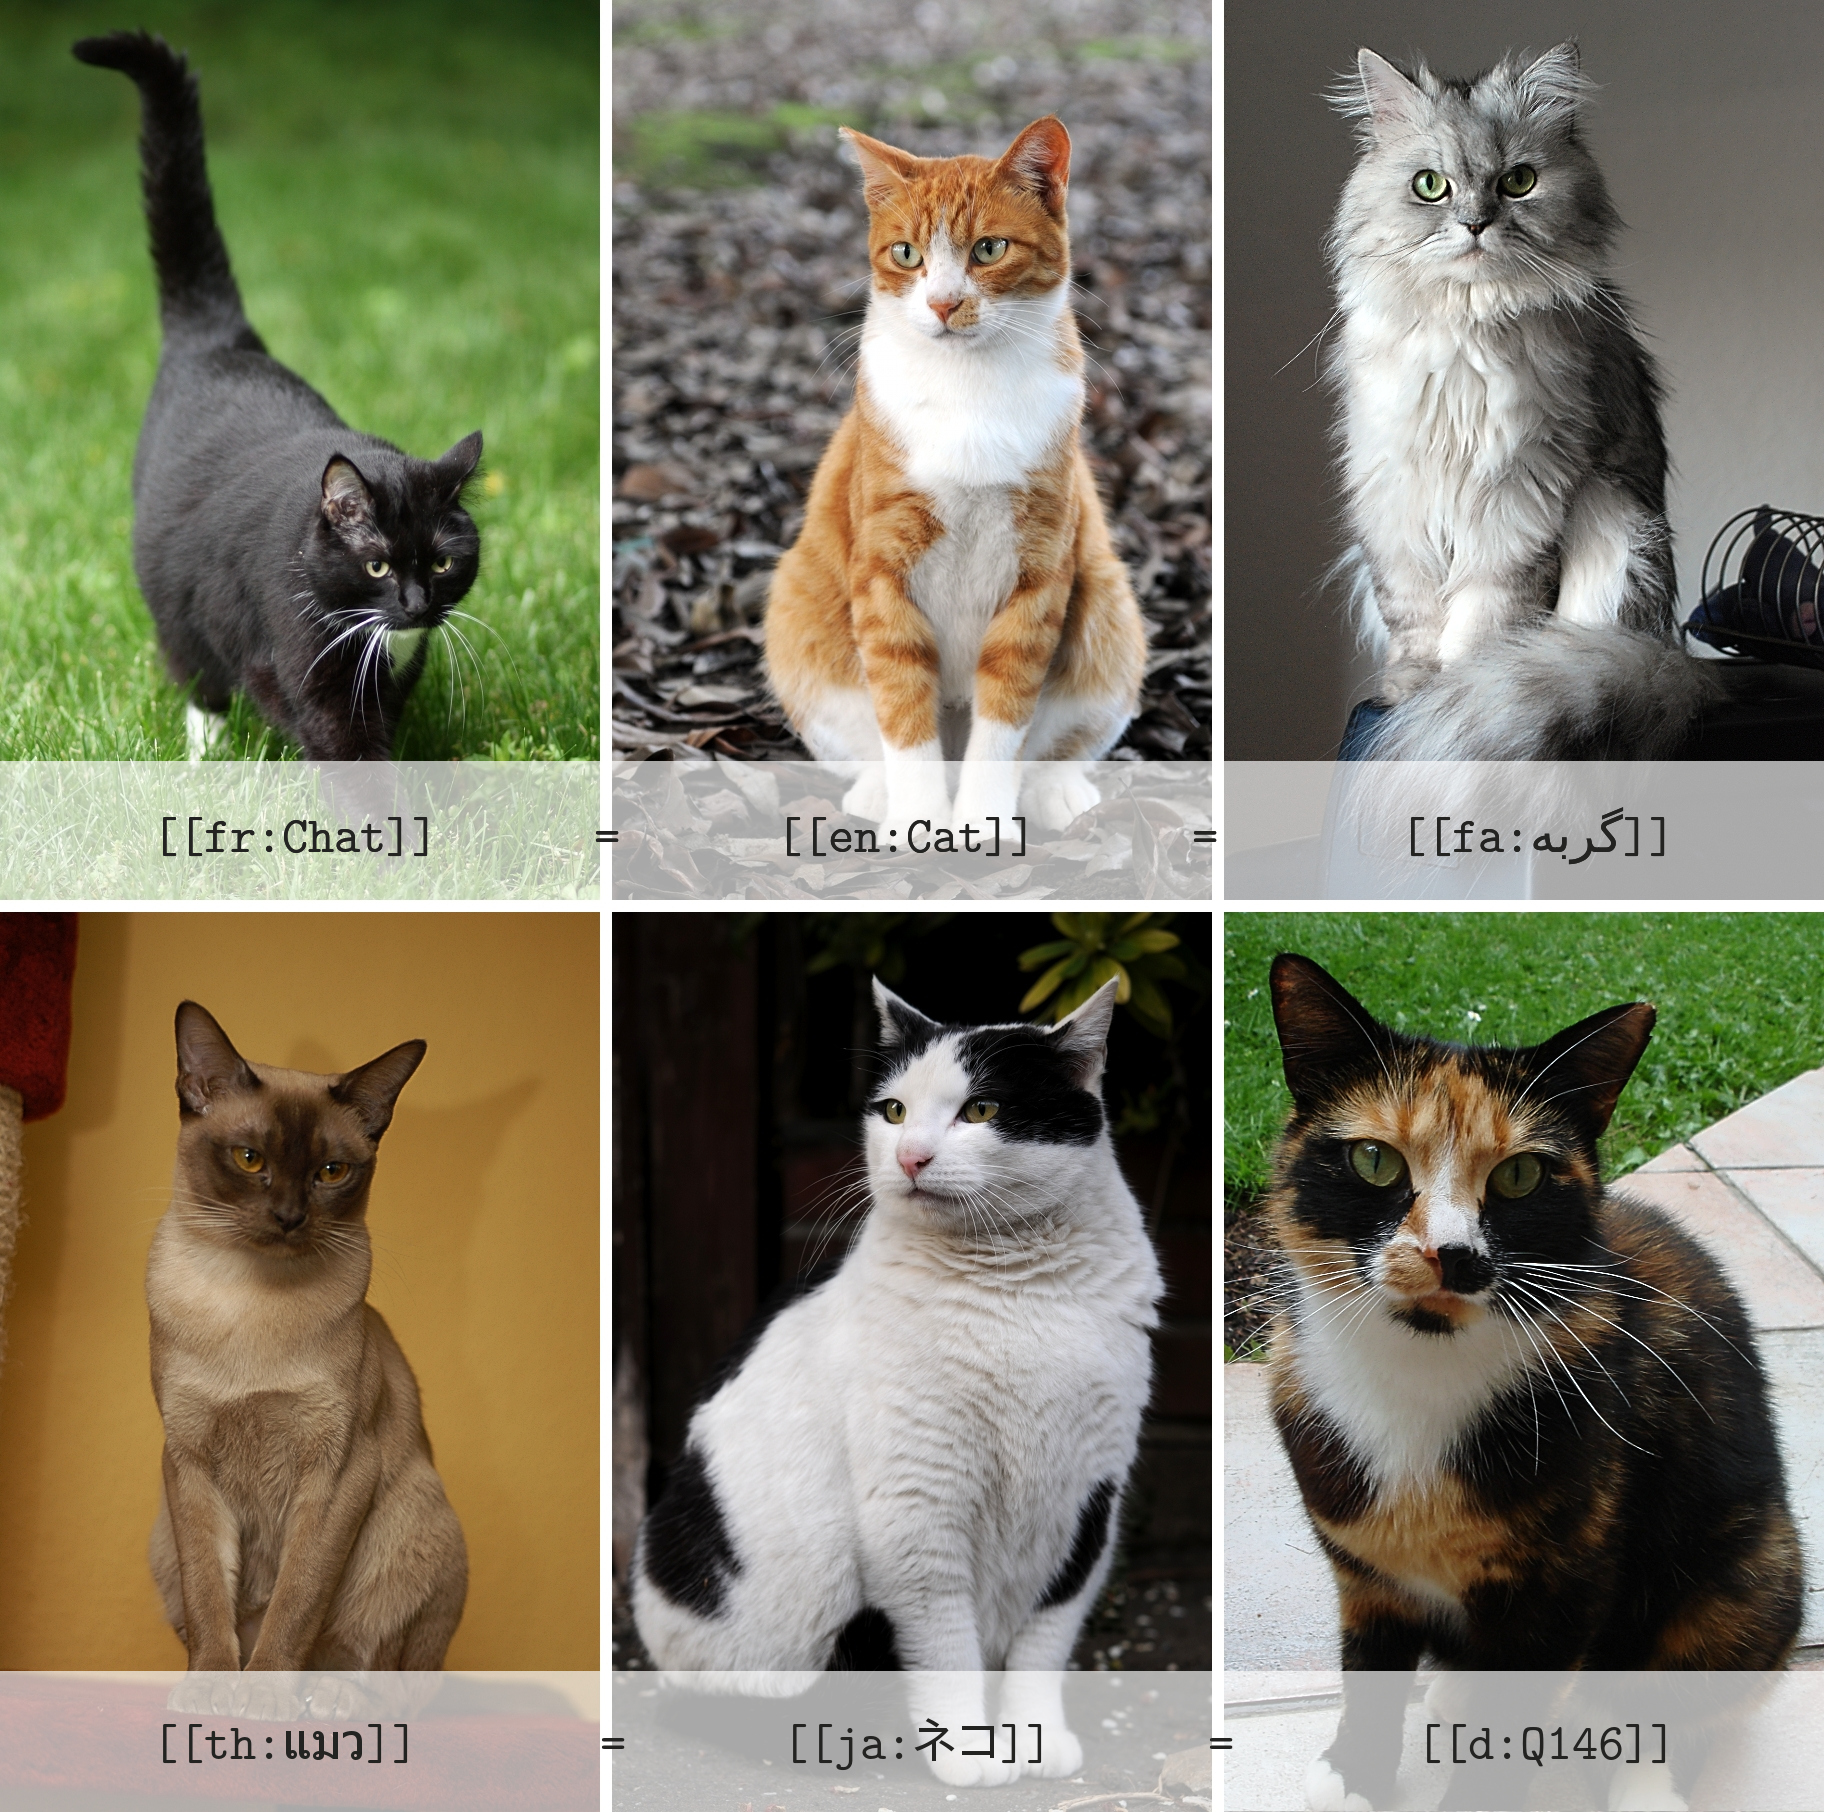 Collage_of_Six_Cats-_Interwikis